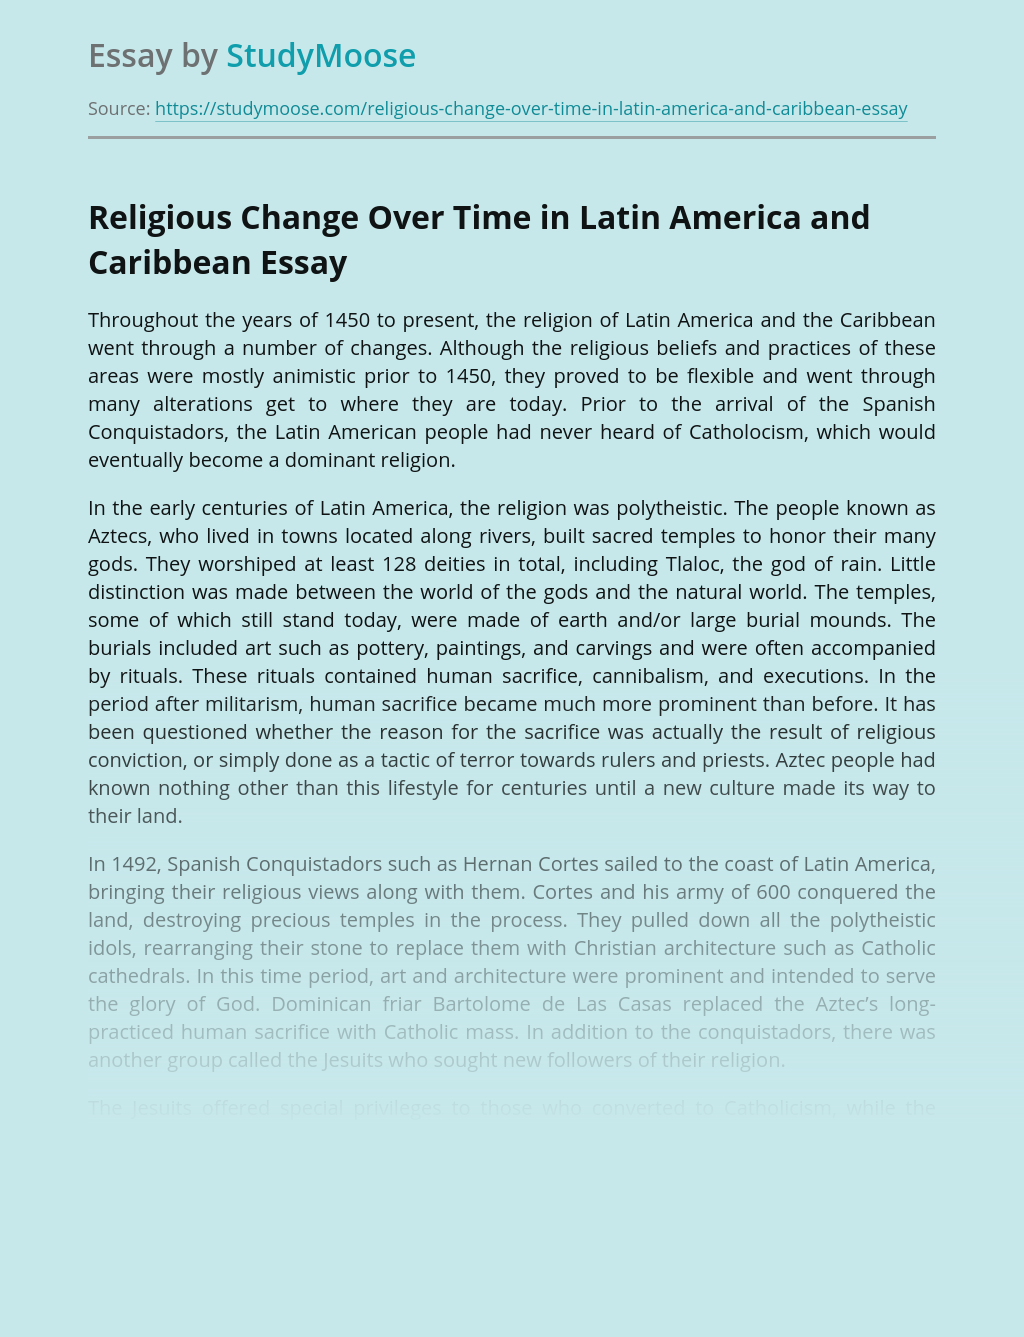 Religious Change Over Time in Latin America and Caribbean